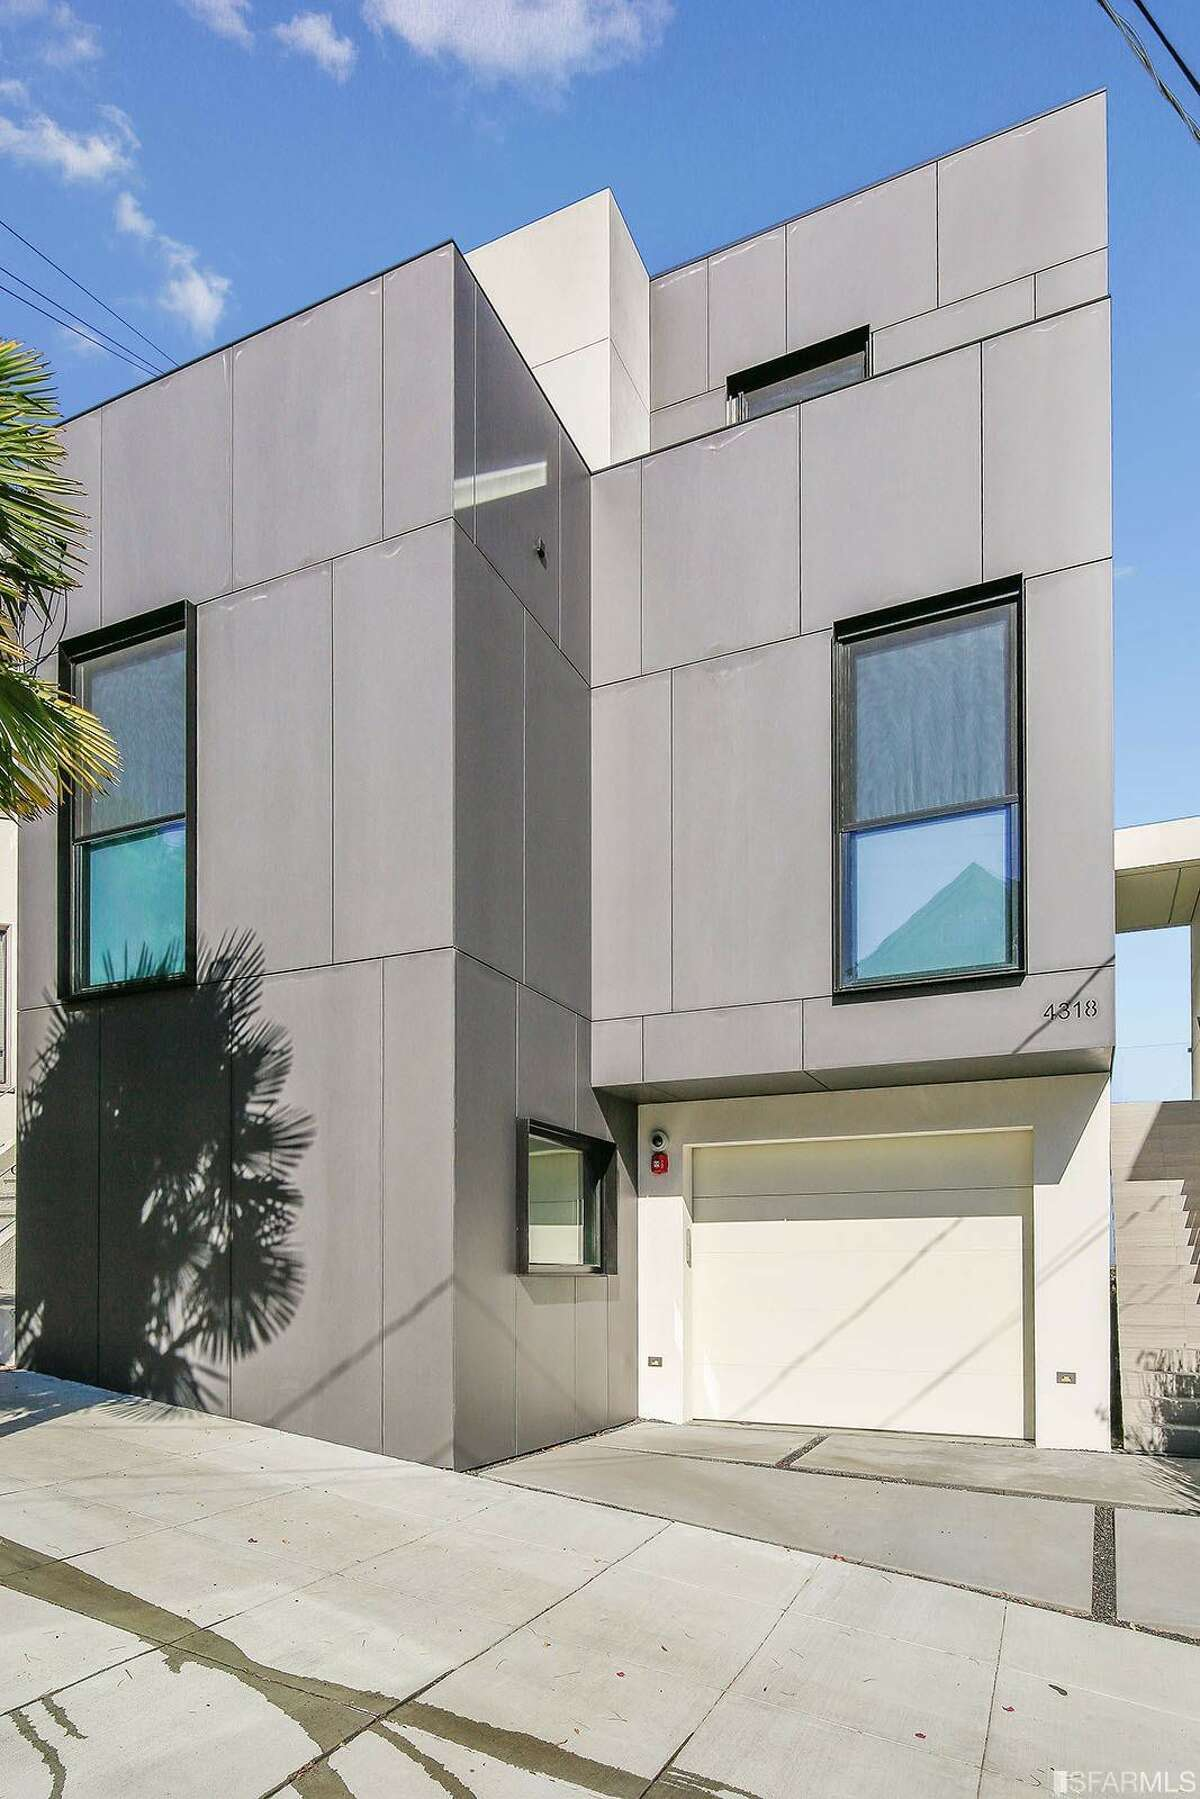 This three-level mansion at 4318 26th St. in Noe Valley will cost you $19,500 per month.